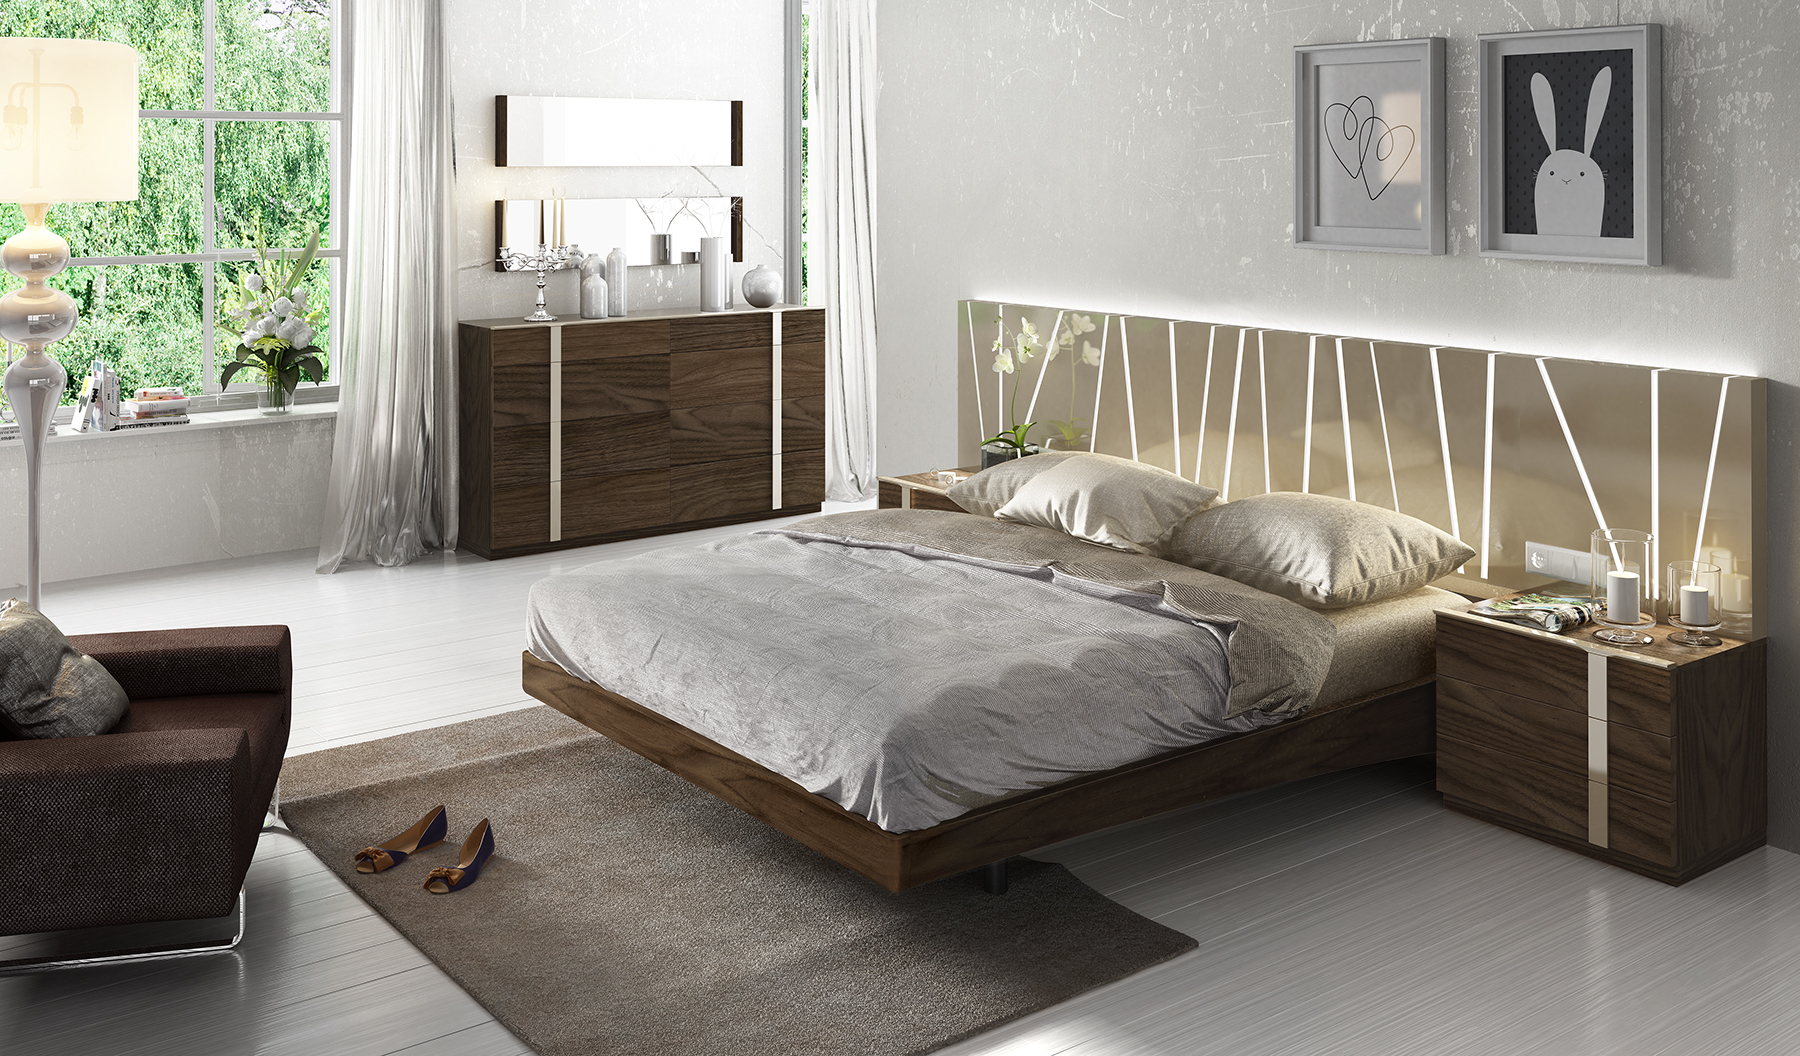 Exclusive Wood Luxury Bedroom Set Feat Light Dallas Texas